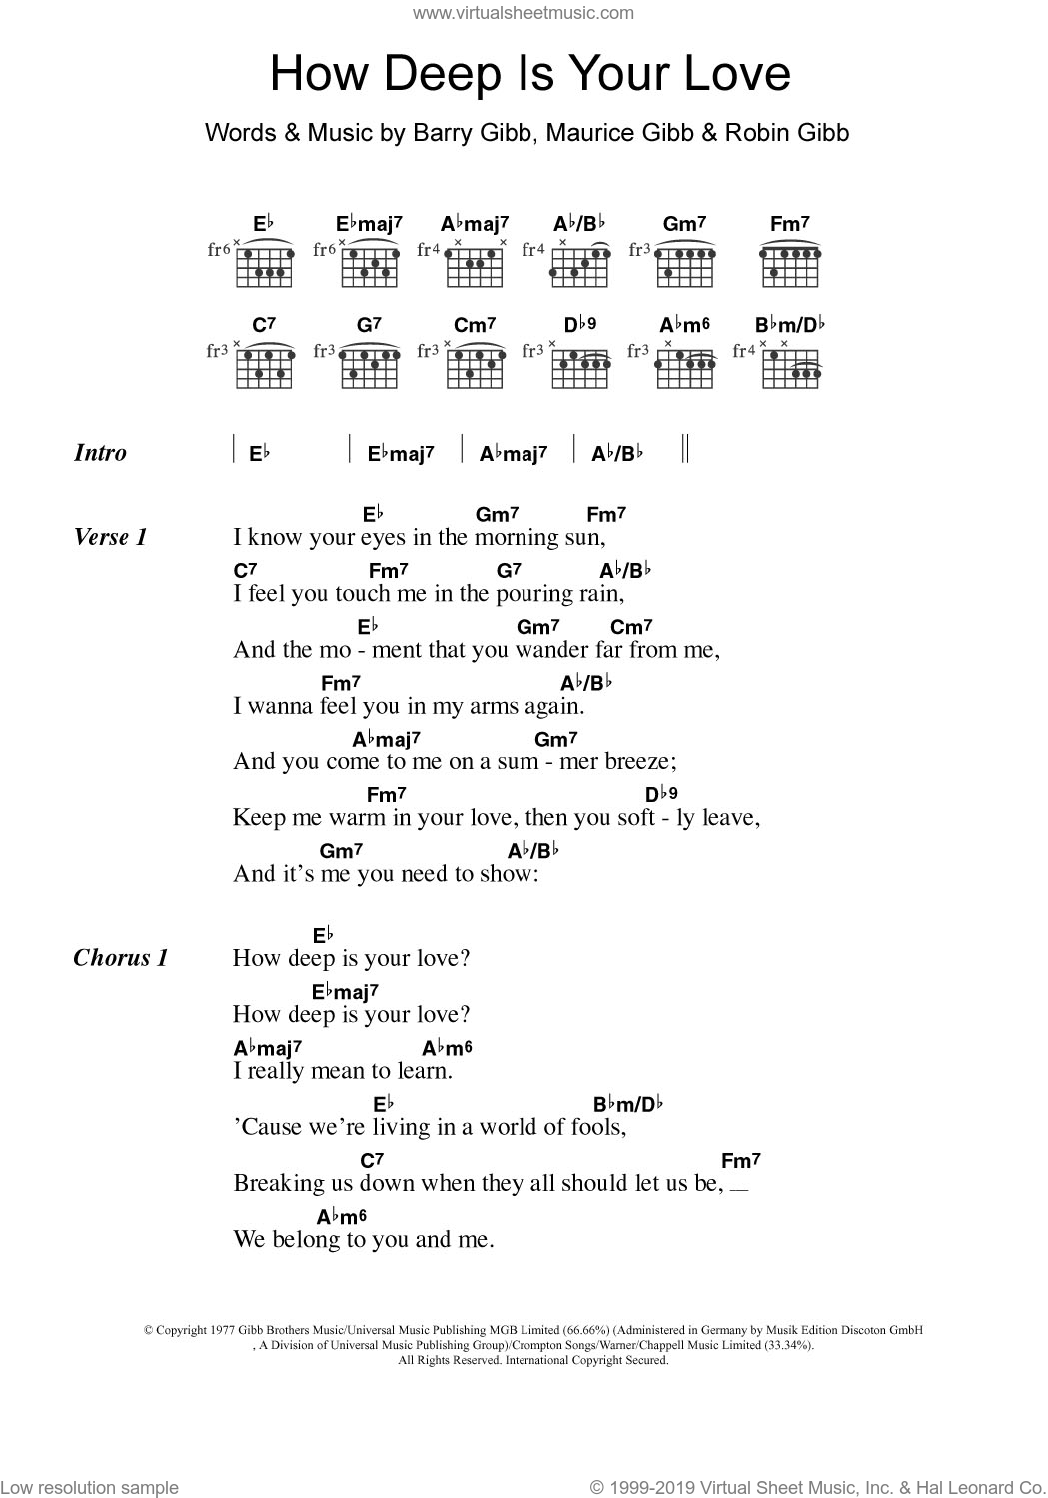 How Deep Is Your Love sheet music for guitar (chords) by Take That, Bee Gees, Barry Gibb, Maurice Gibb and Robin Gibb, intermediate